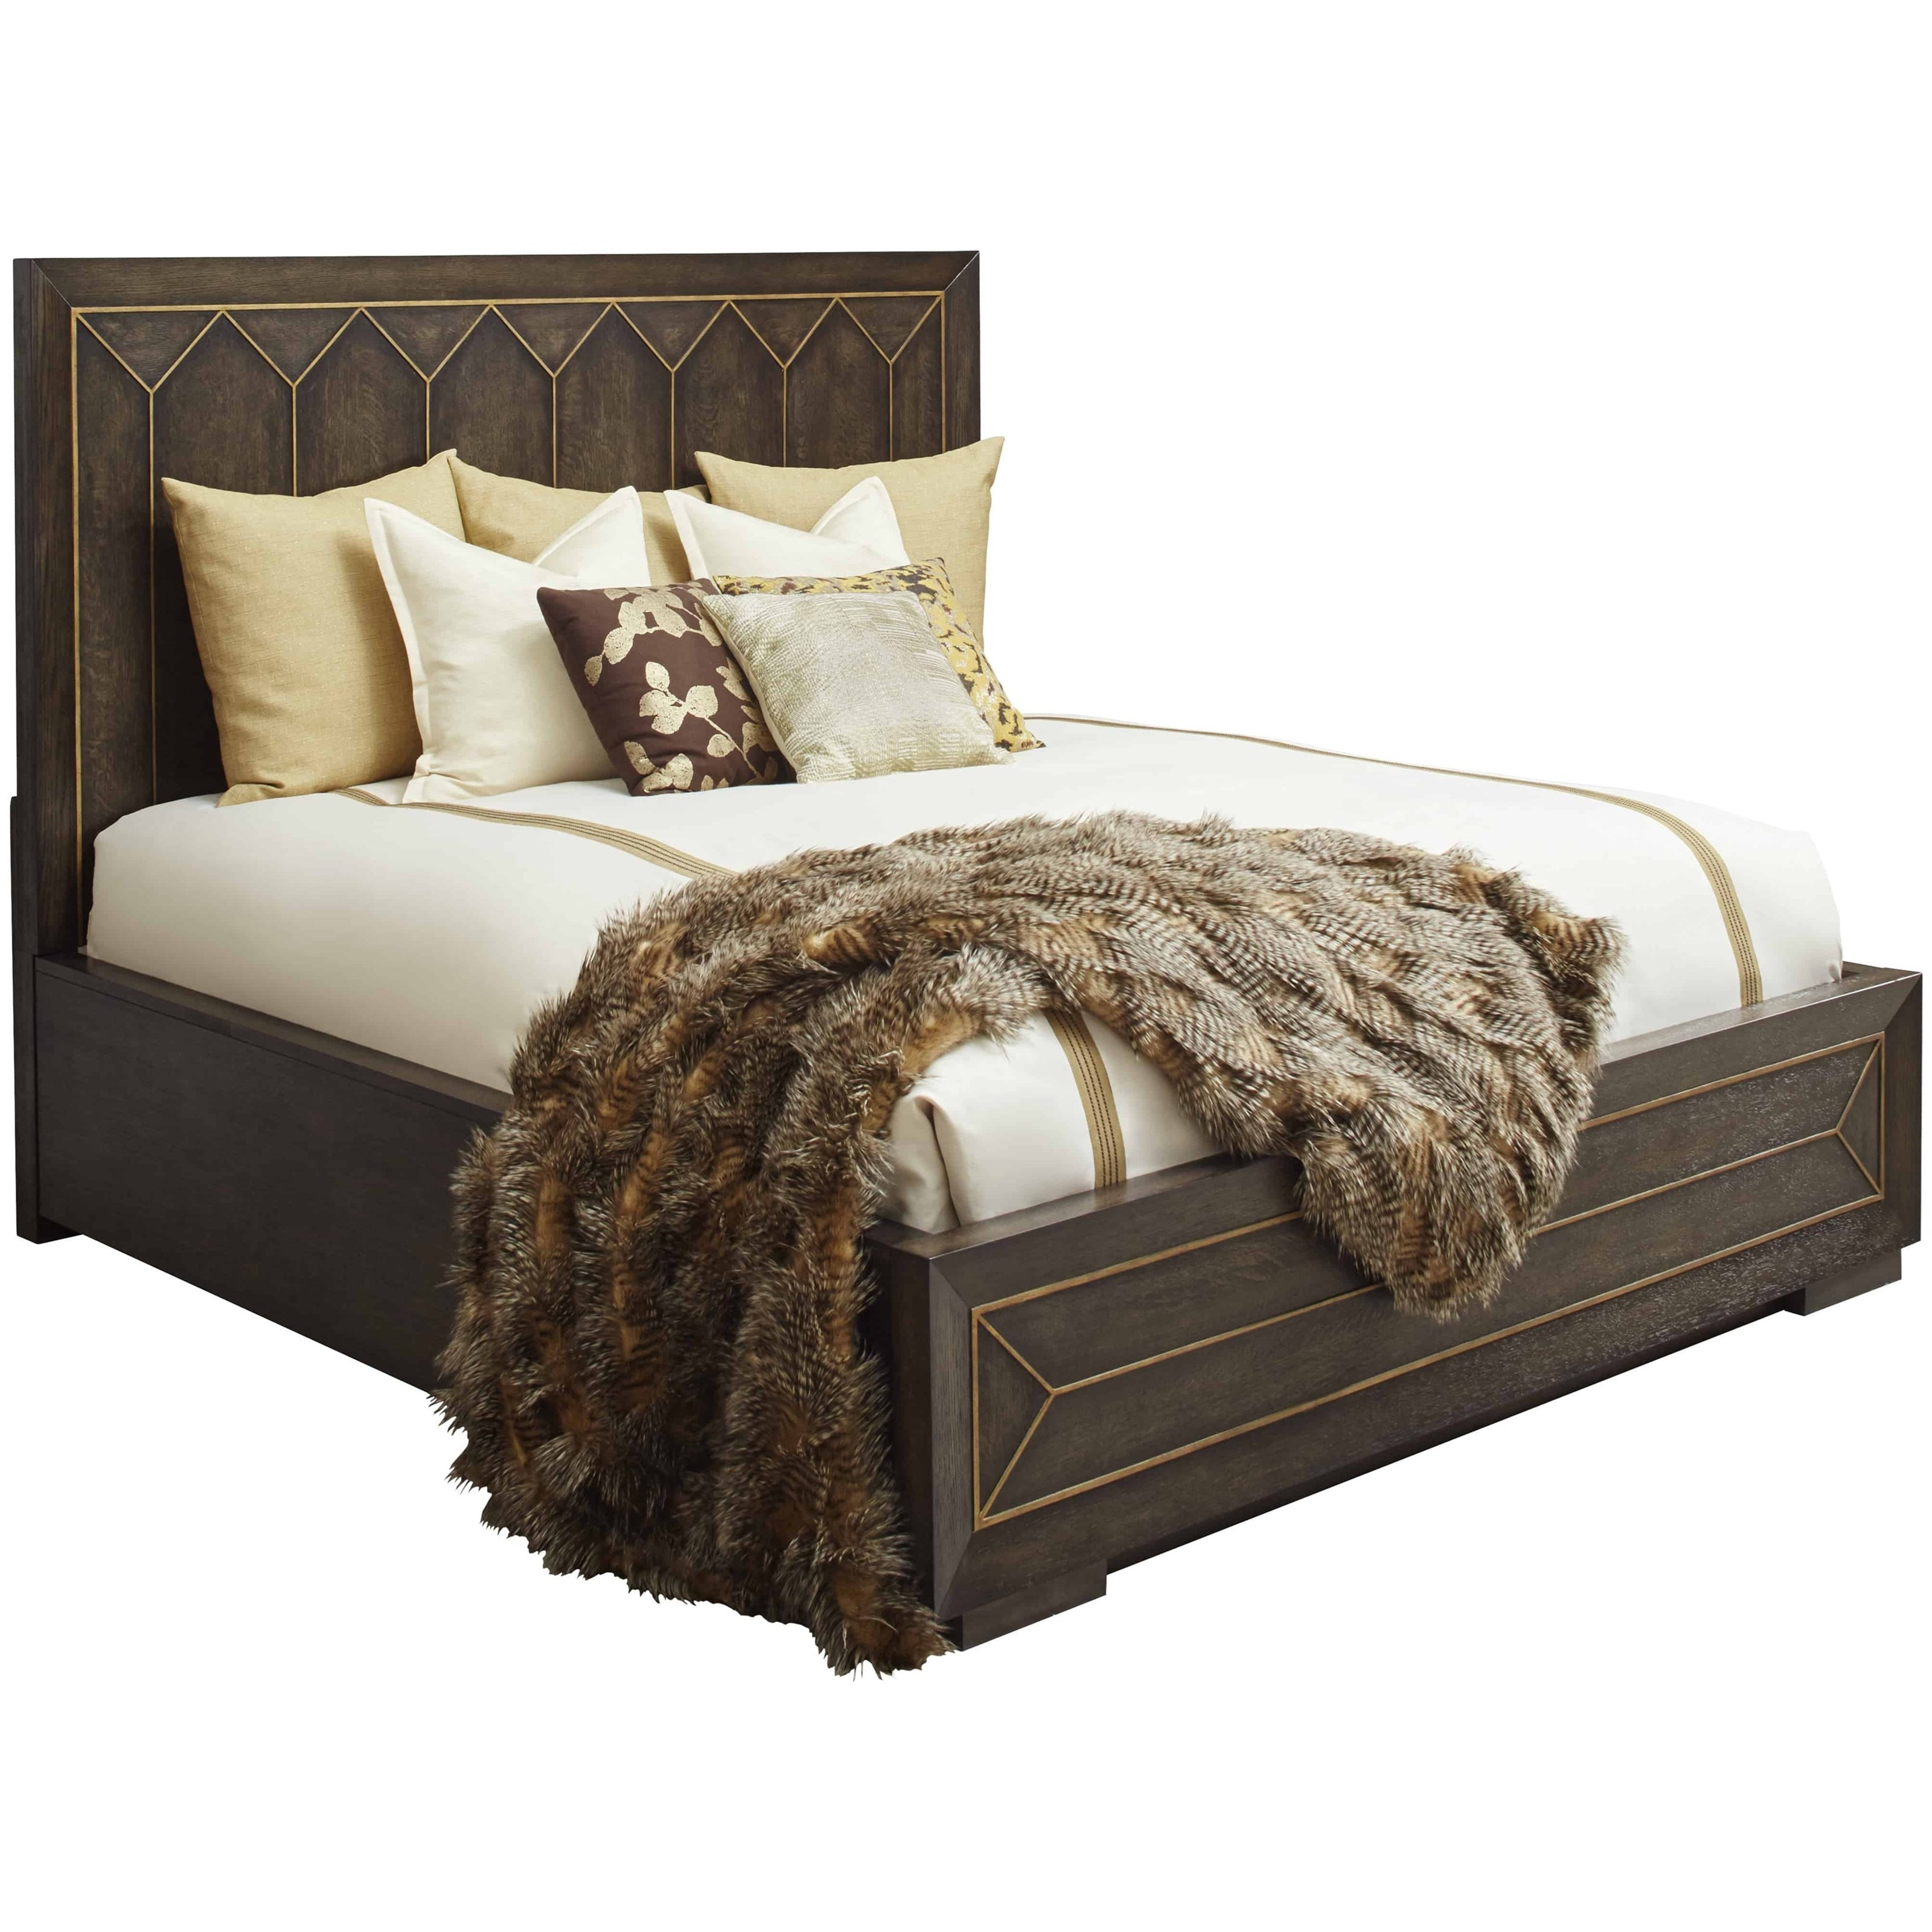 WoodWright Queen Eichler Panel Bed by A.R.T. Furniture Inc at Home Collections Furniture